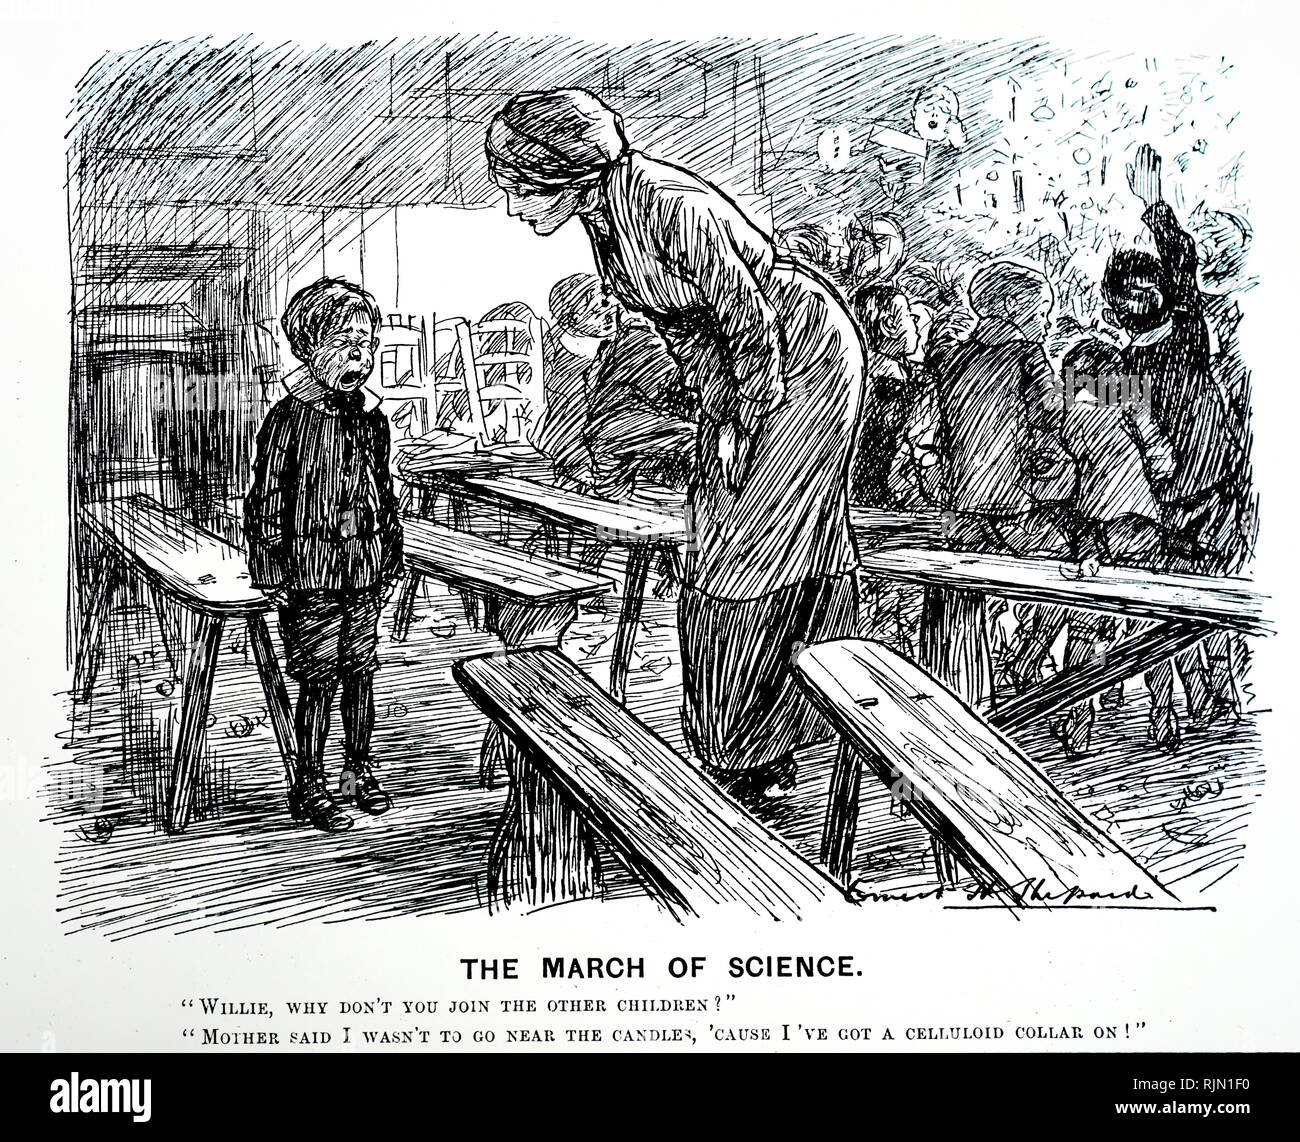 Illustration showing the perils of the celluloid collar, which was highly inflammable. Cartoon by Ernest H. Shepard from Punch,1911. - Stock Image